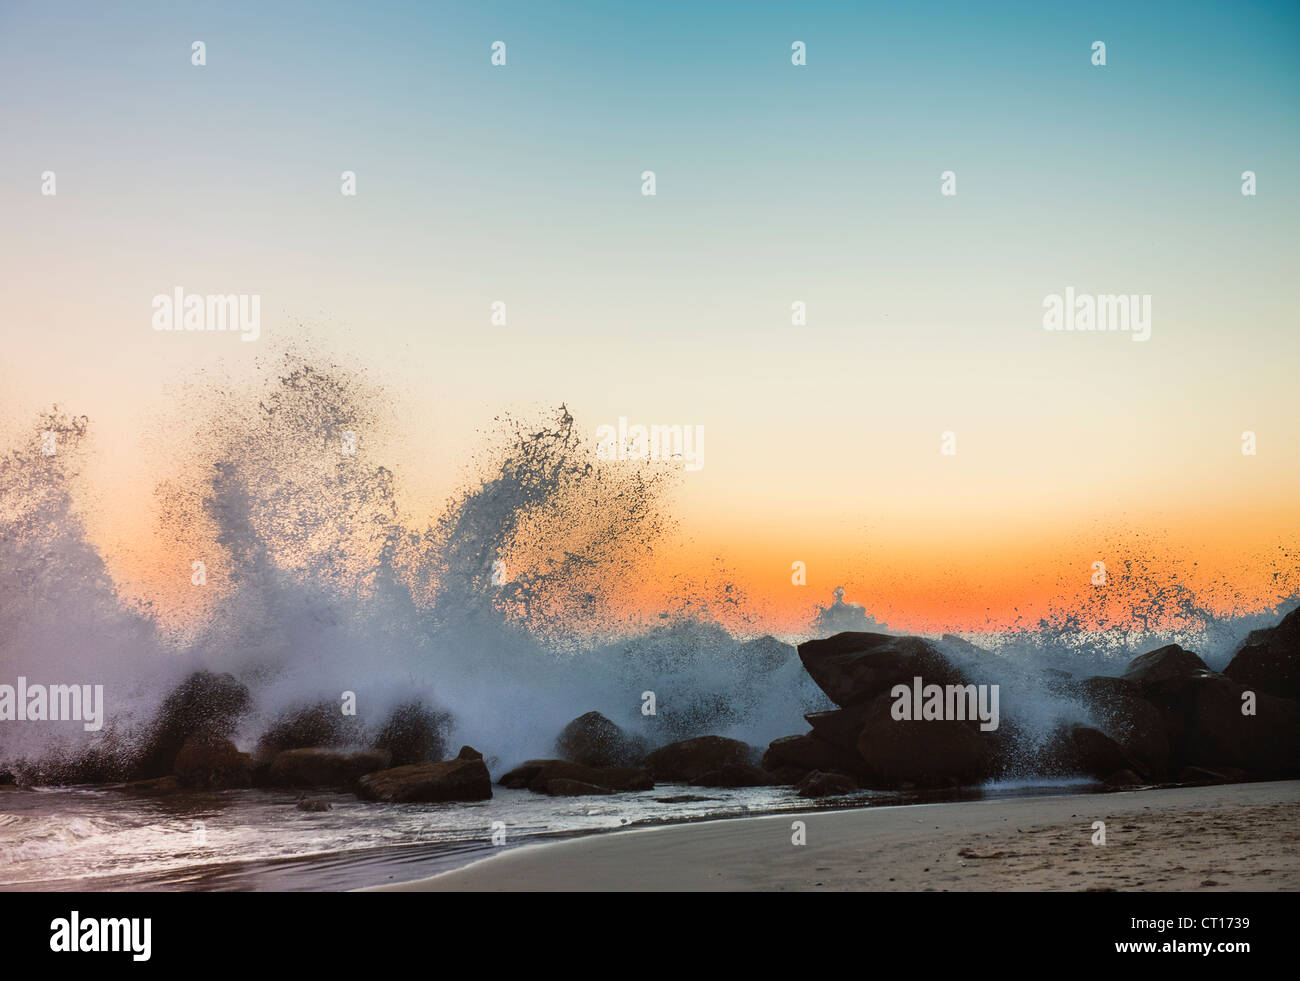 Waves crashing on rocky beach at sunset - Stock Image